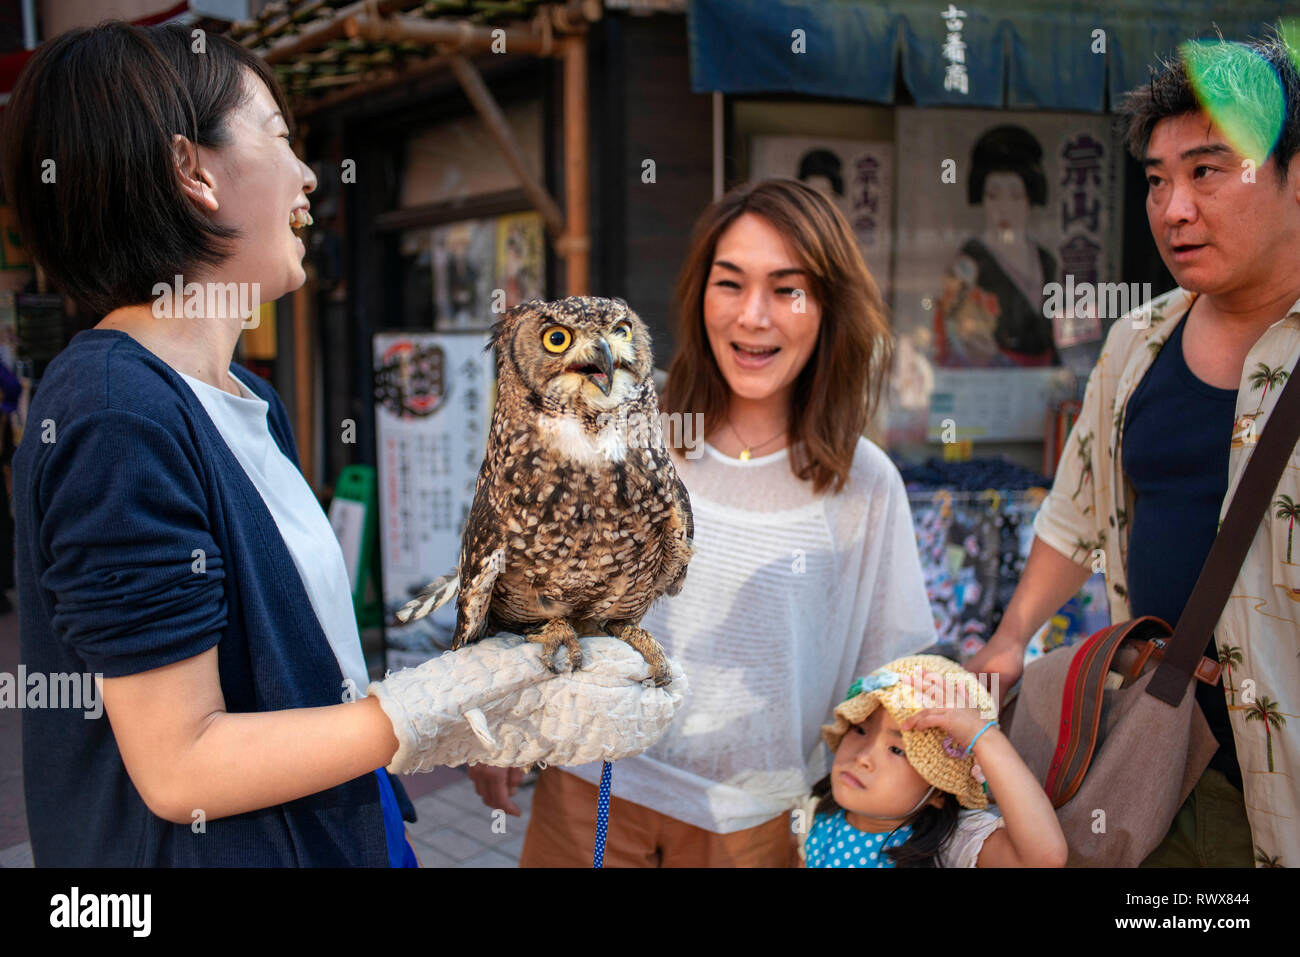 Owl cafe. Young Japanese woman advertising and promoting local bar where customers can pet and touch wild animals. Asakusa district, Tokyo, Japan, Asi - Stock Image